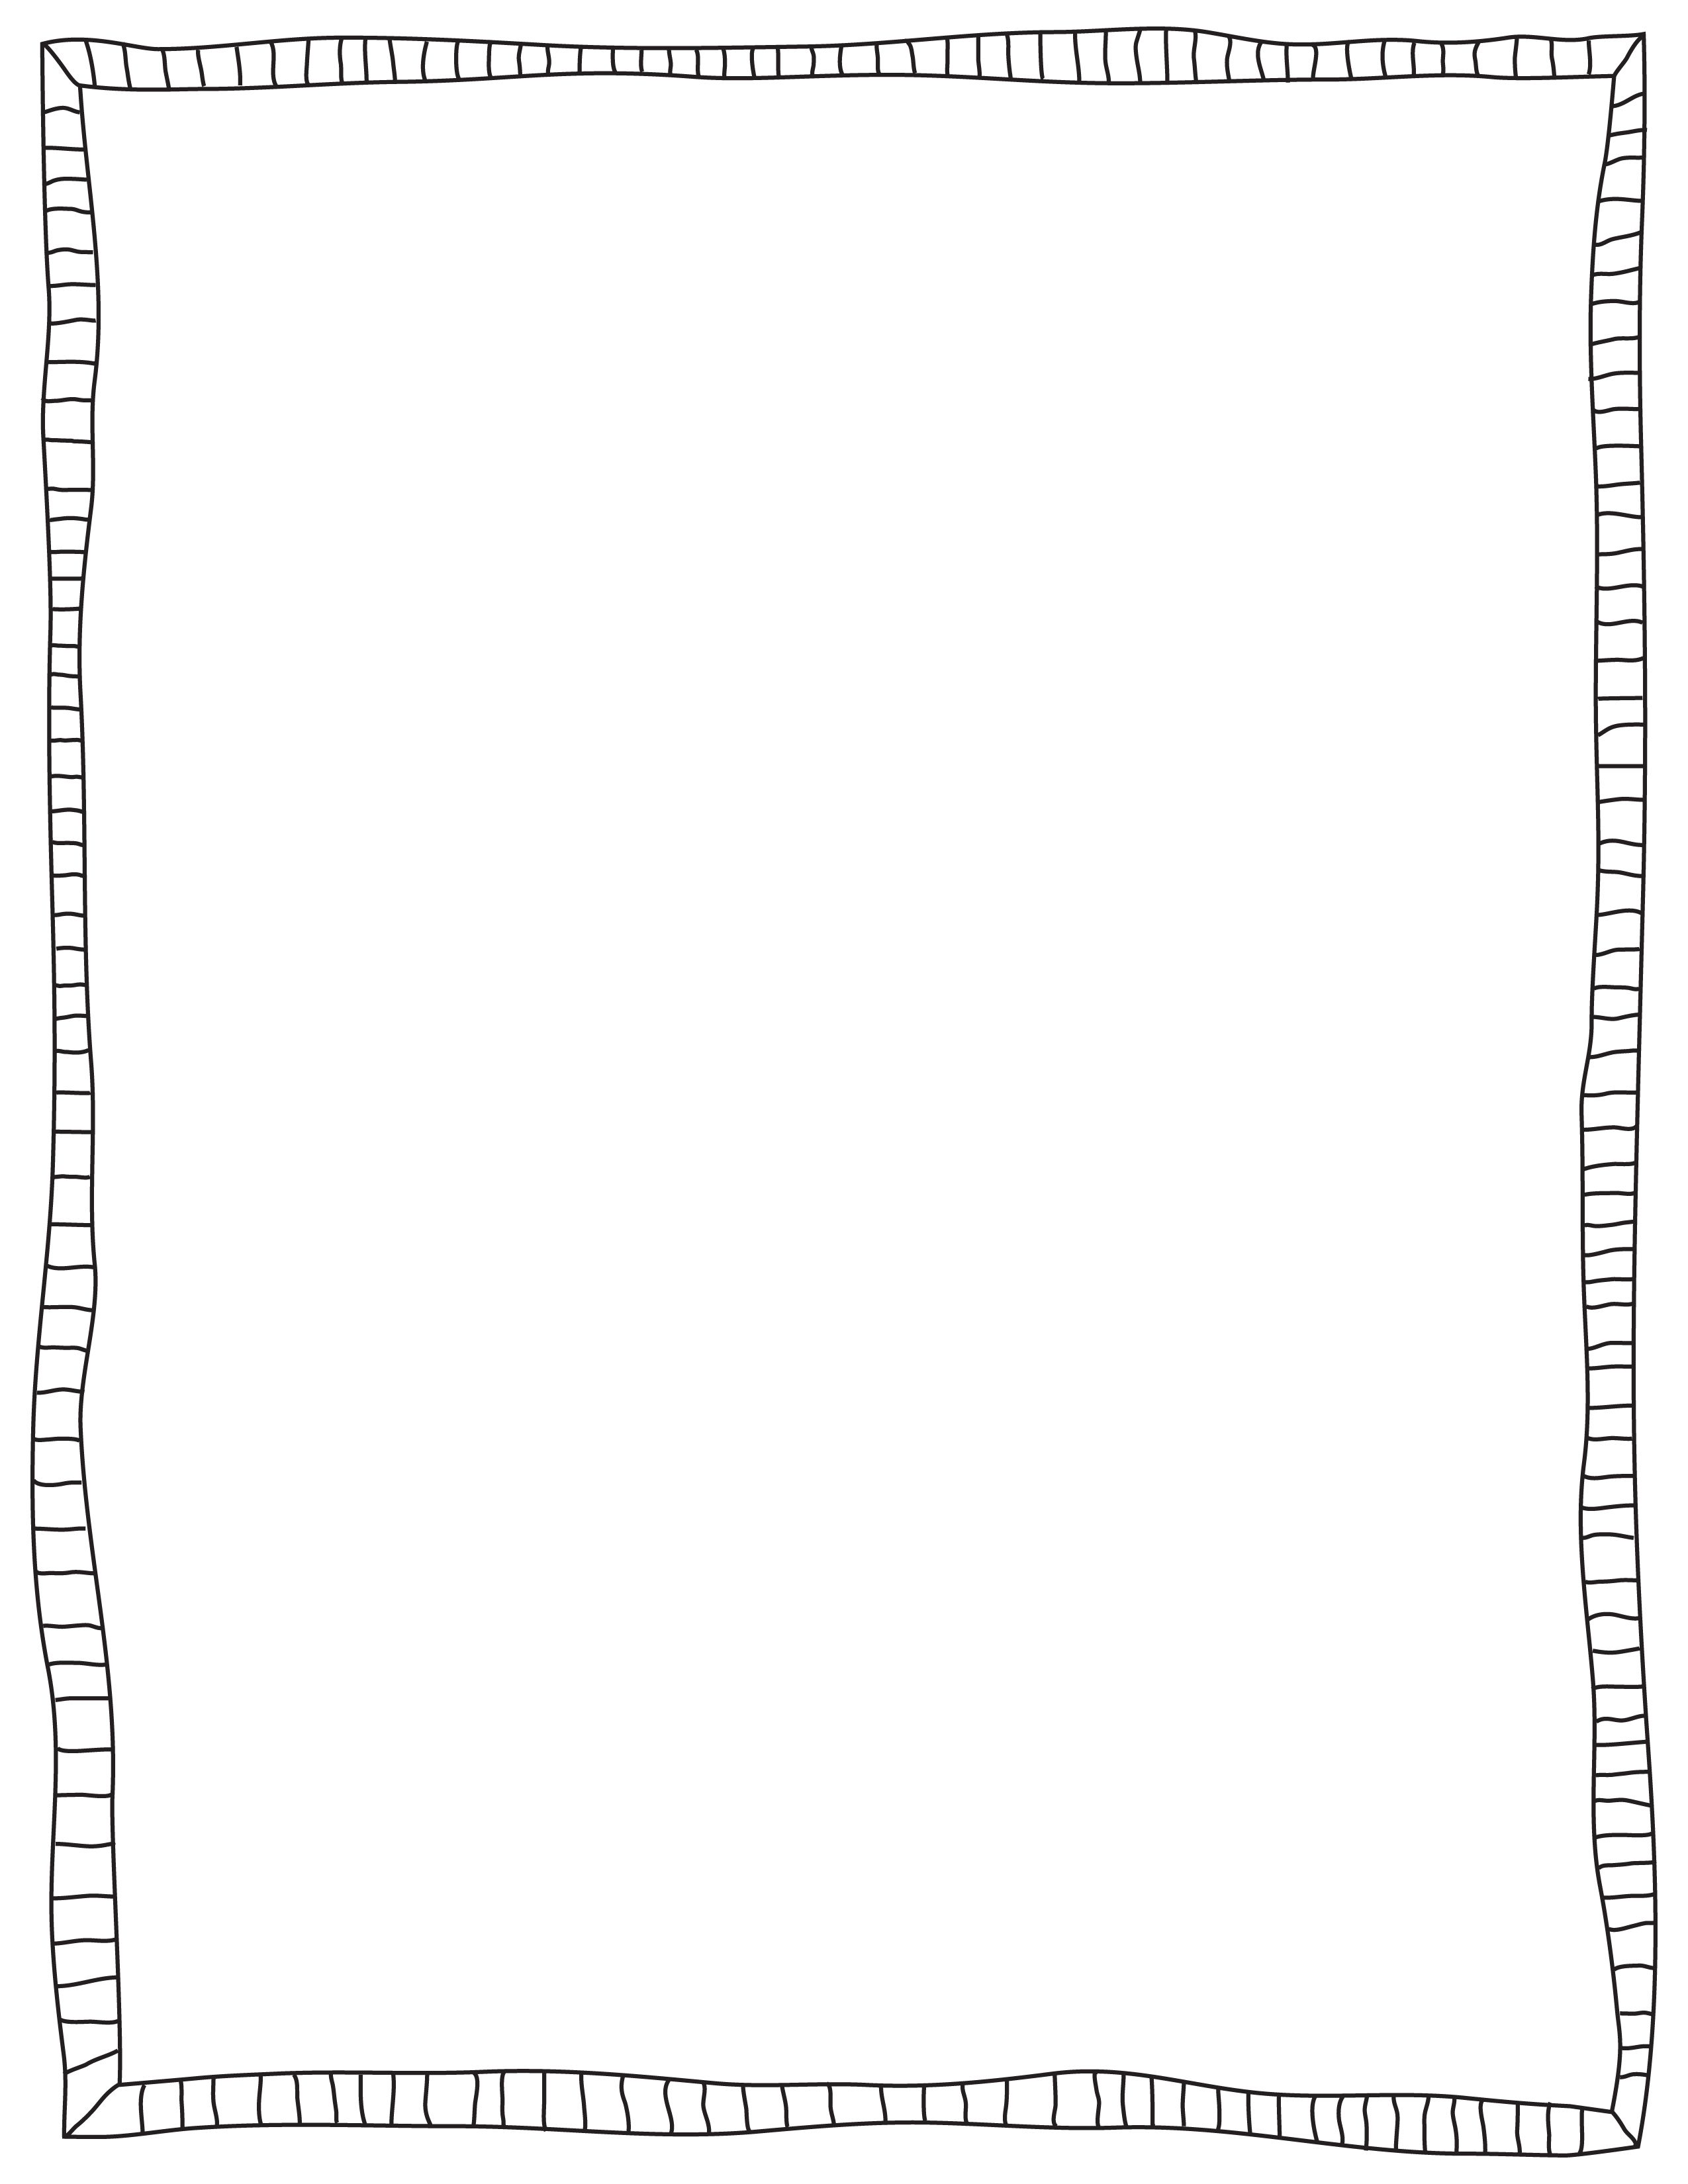 Banner clipart doodle. Cute black and white